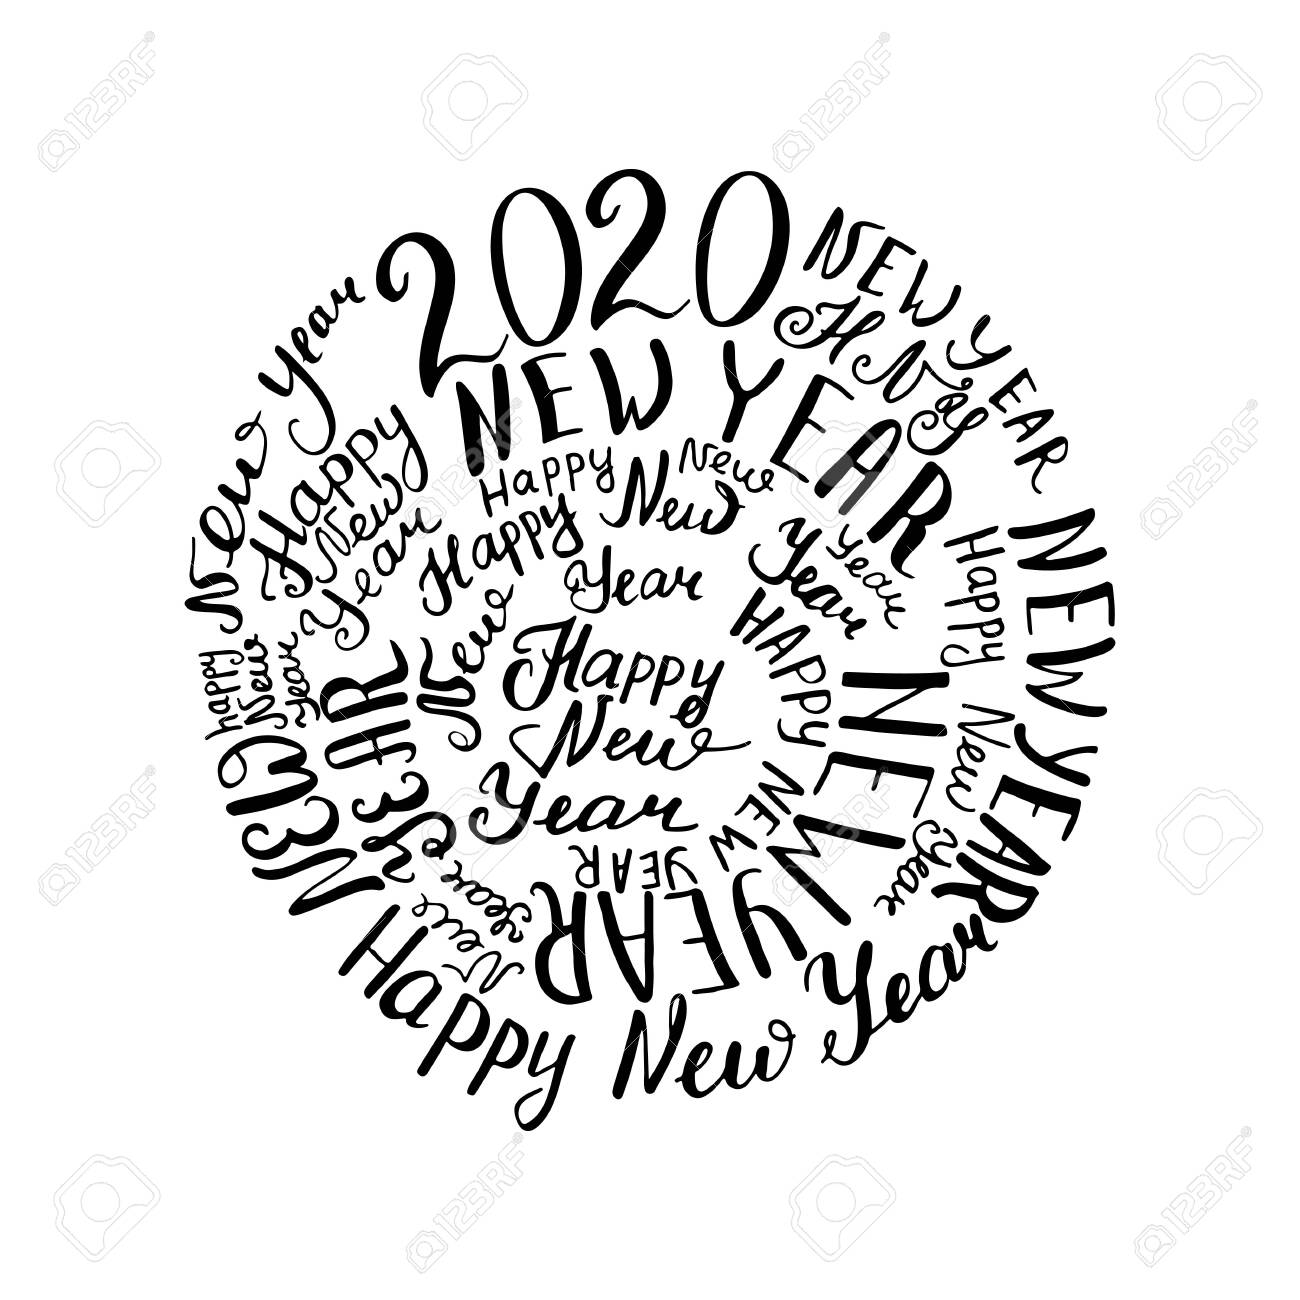 New Words 2020.2020 New Year Calligraphic Words Vector Illustration Black